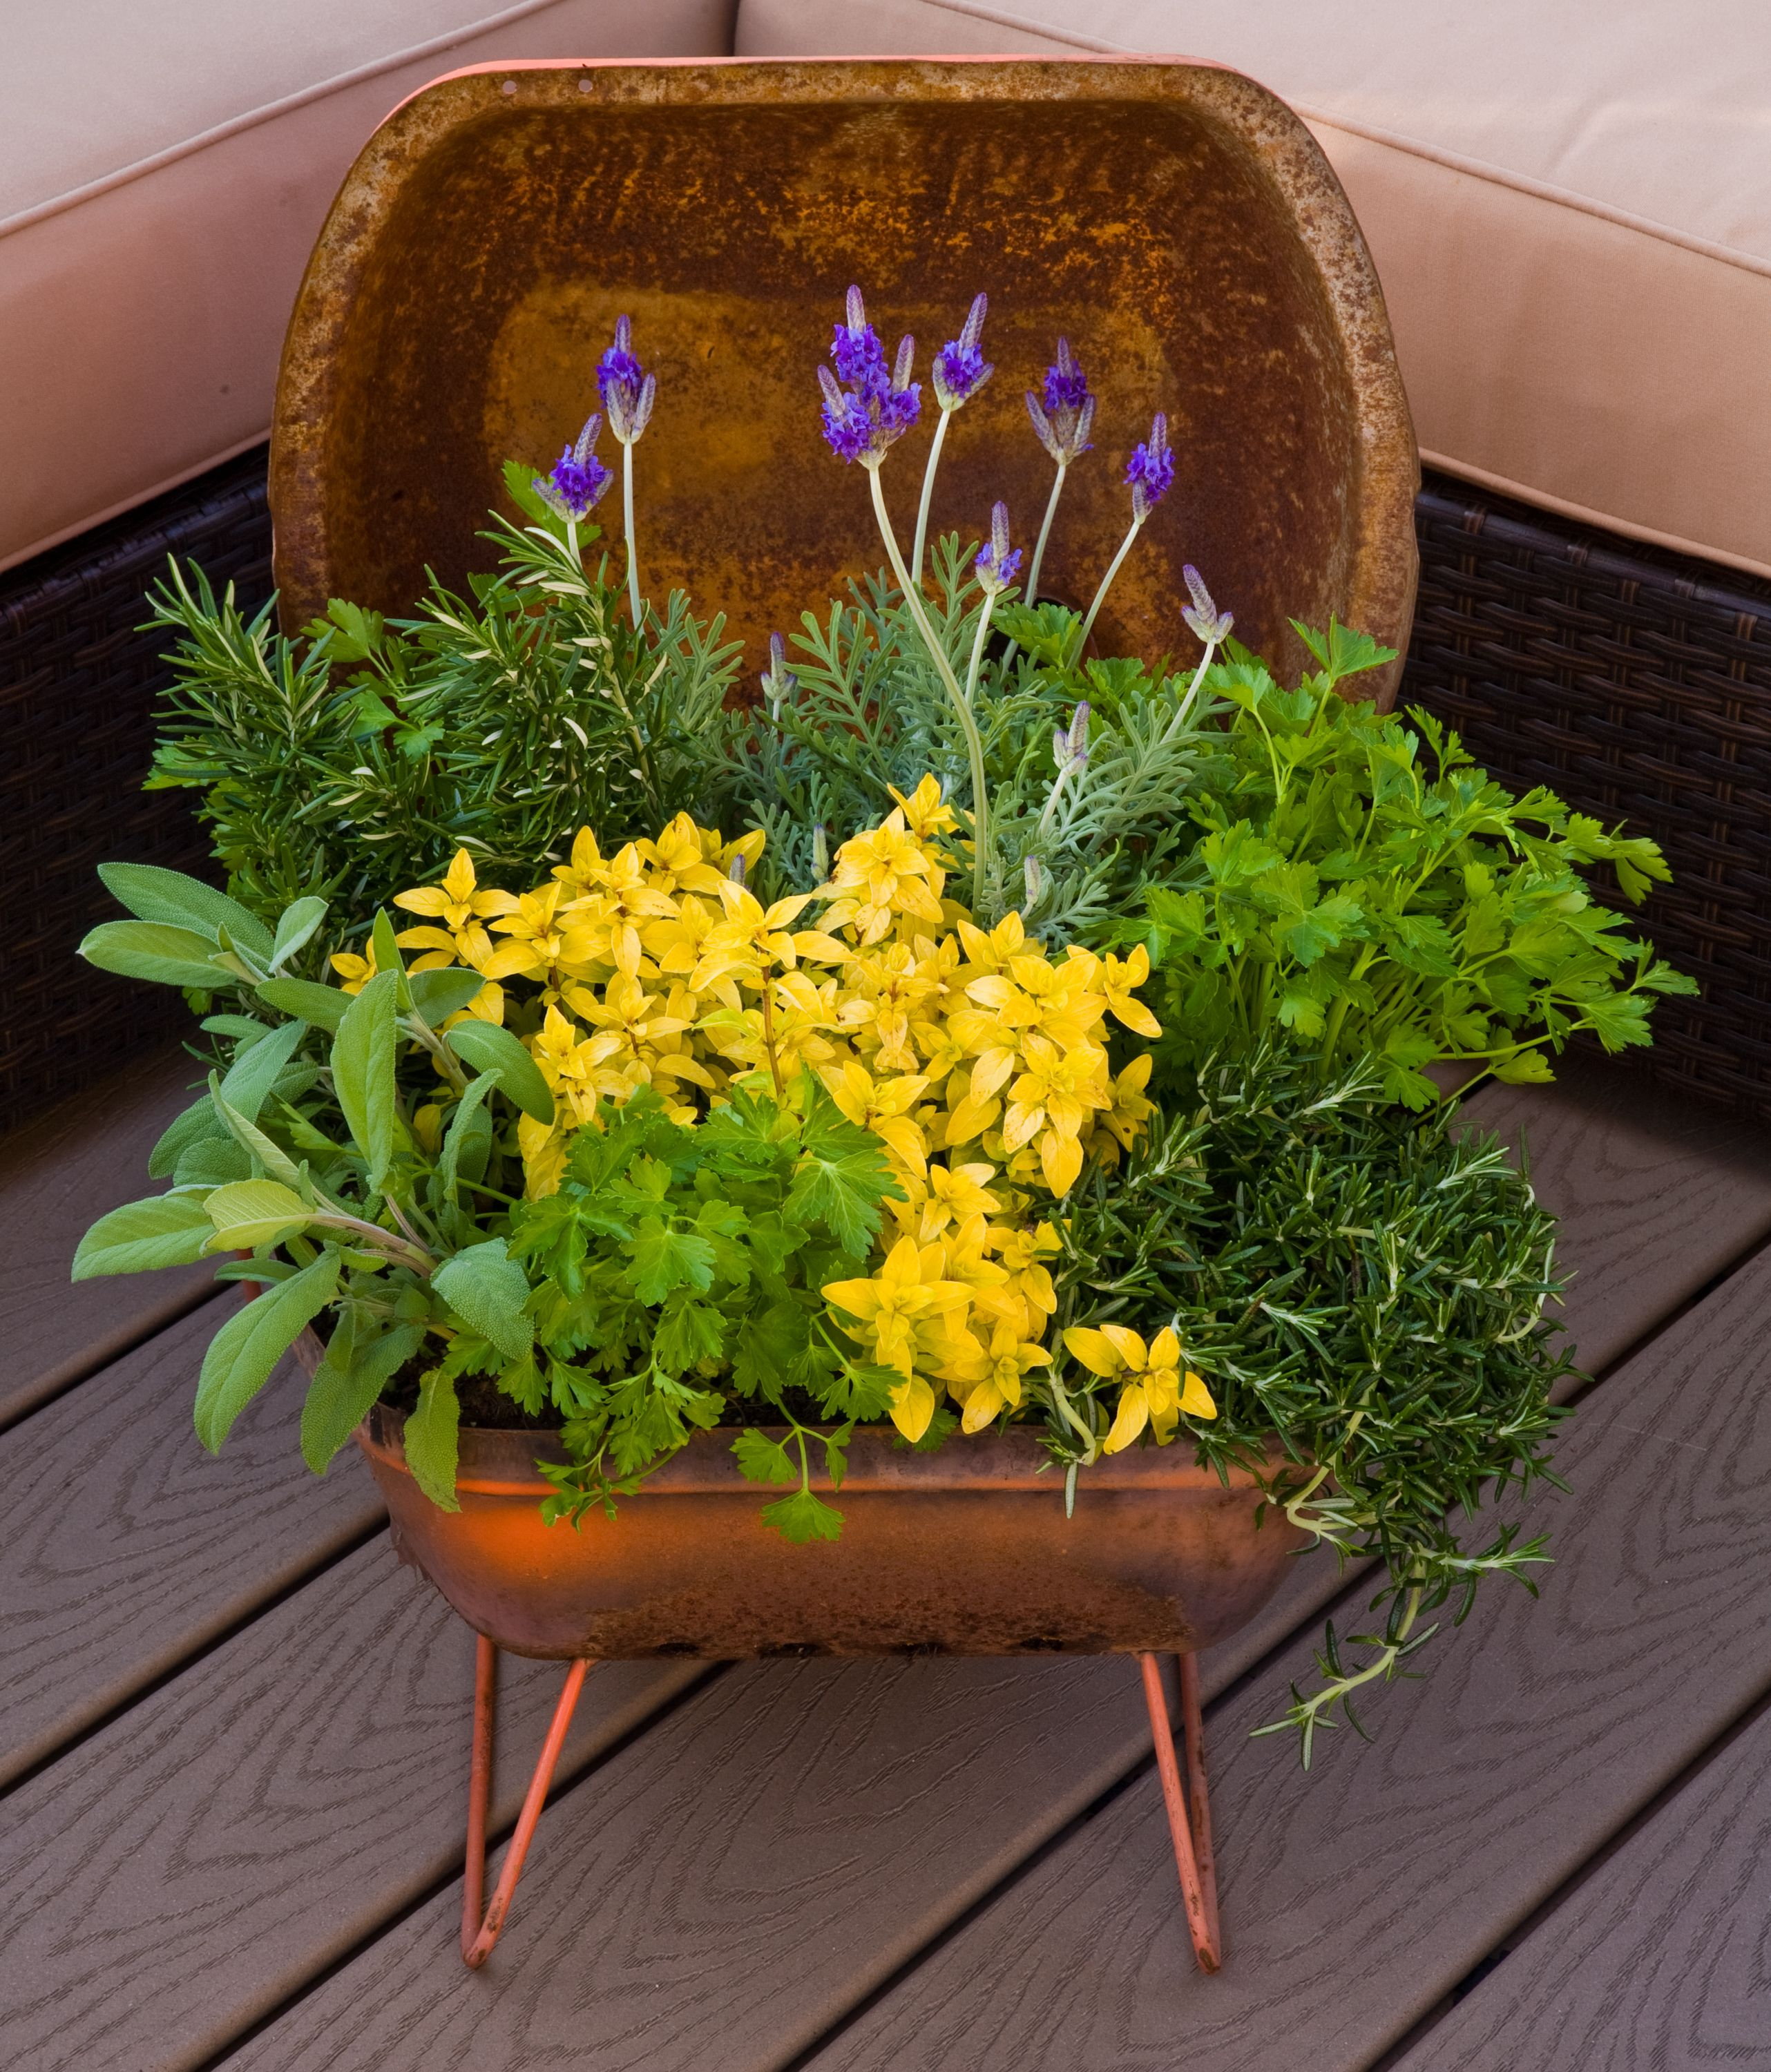 Kitchen Bench Herb Garden: Recycled Portable Table Top Grill To Container Herb Garden